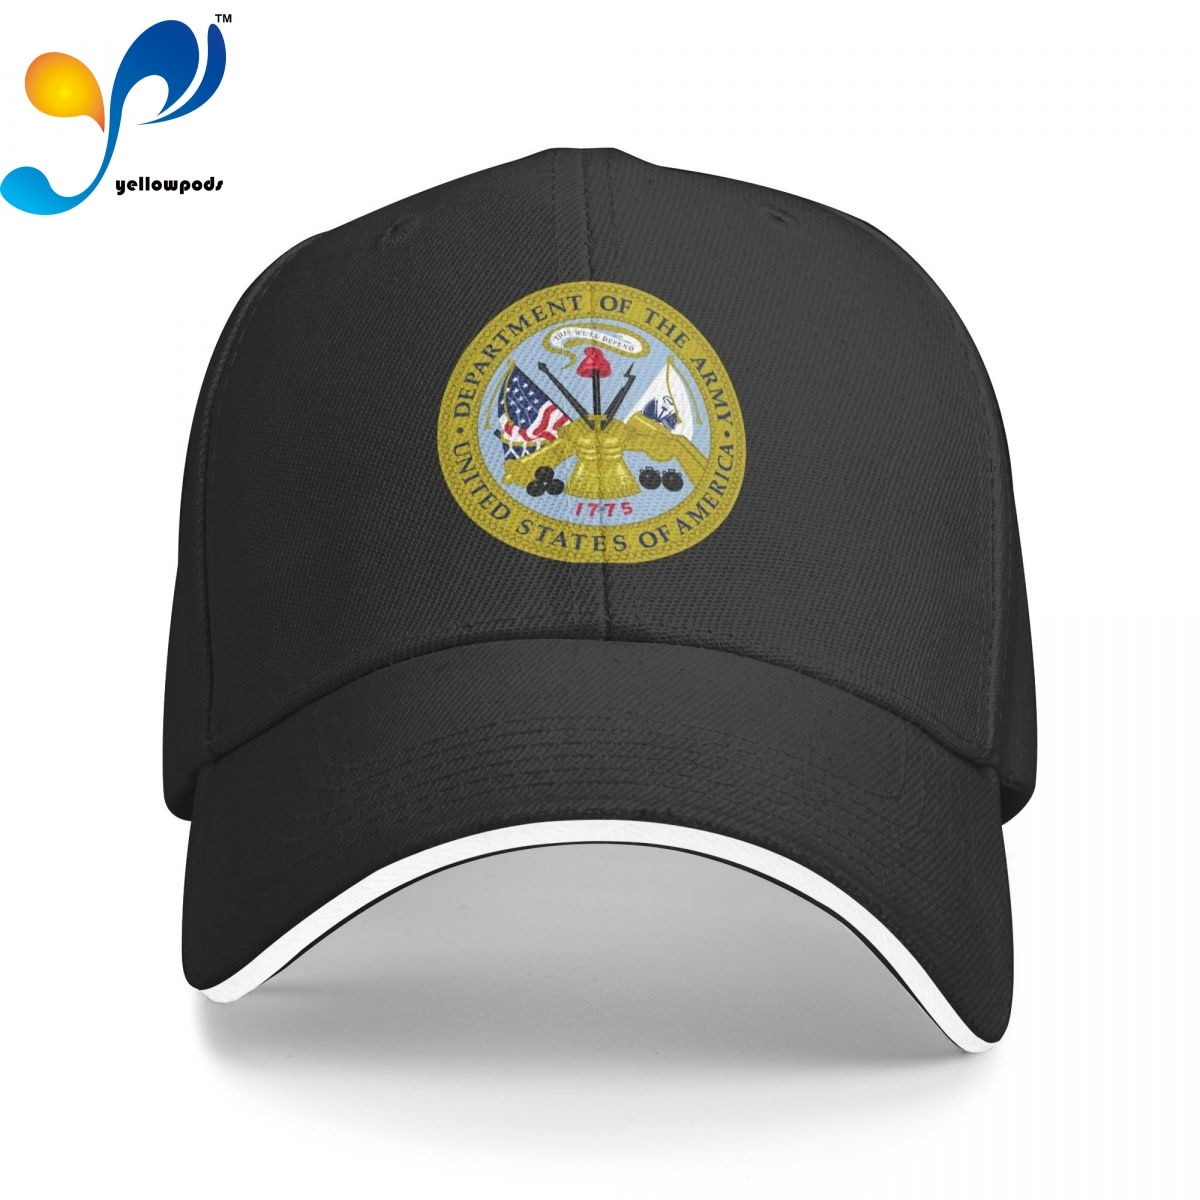 u s department of the army improvised weapons Department Of The United States Army Baseball Hat Unisex Adjustable Baseball Caps Hats Valve for Men and Women